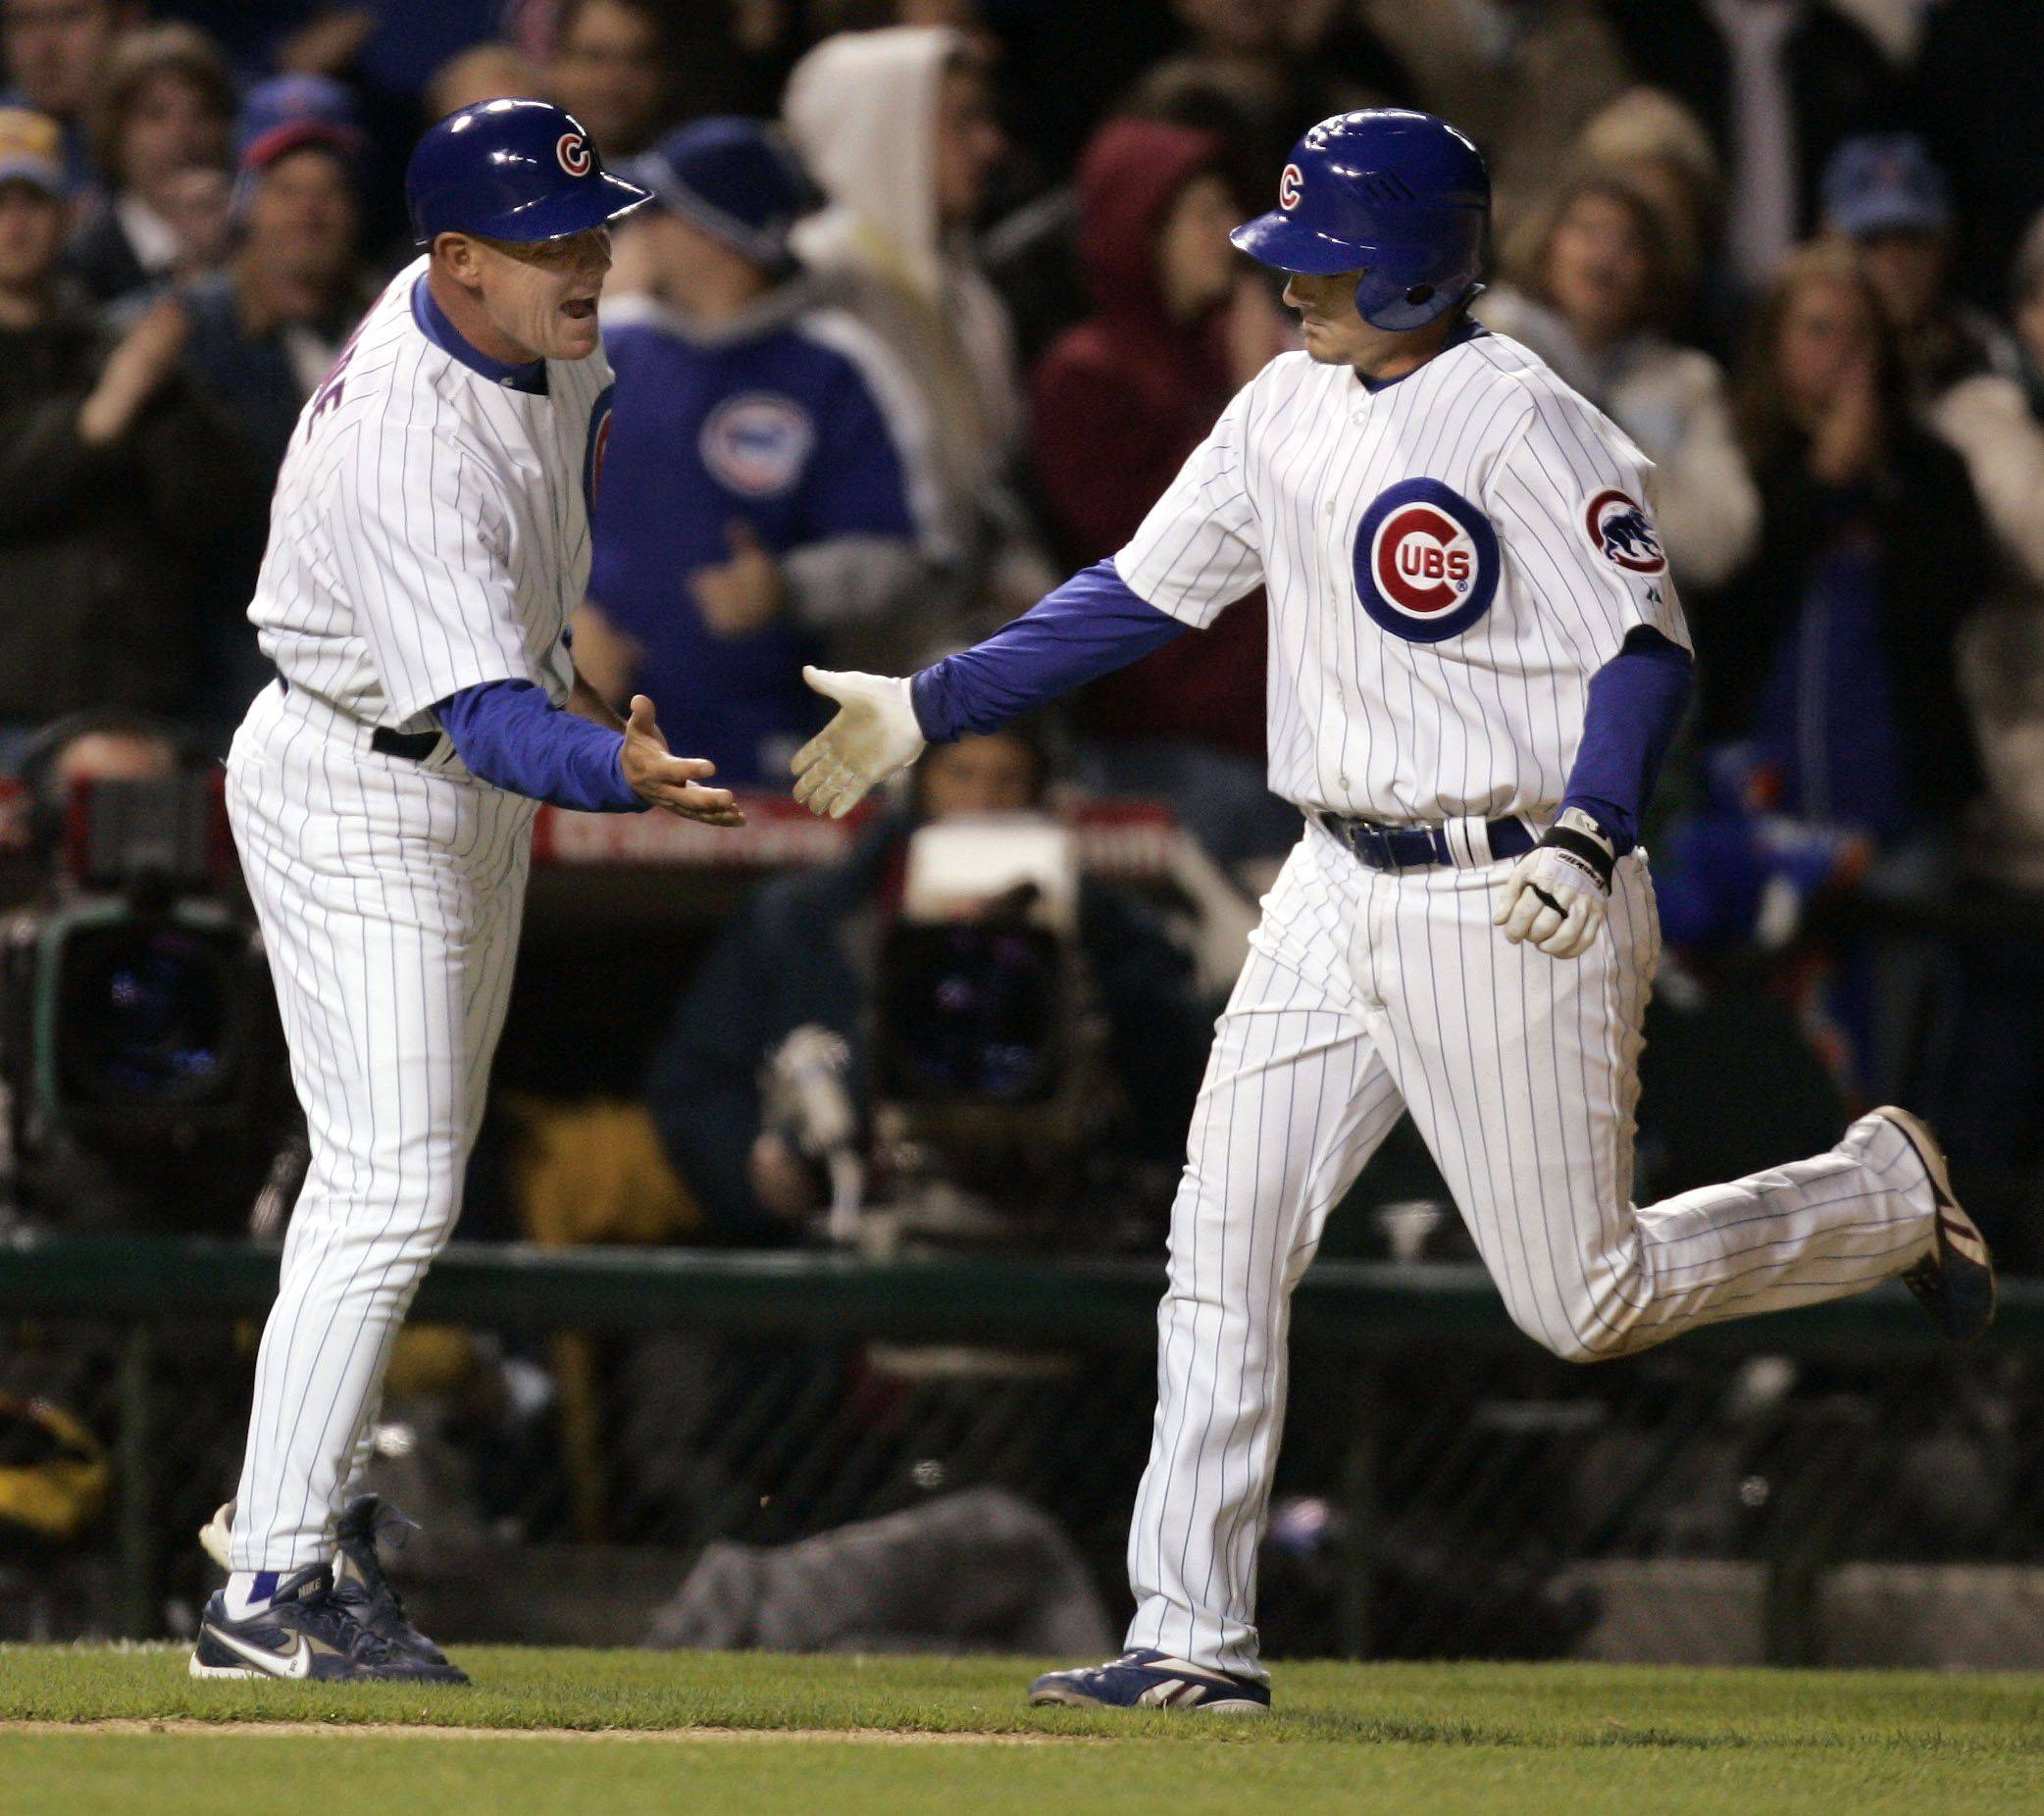 Cubs third base coach Mike Quade slaps hands with Ryan Theriot as he rounds third after his two run home run in the 8th inning.